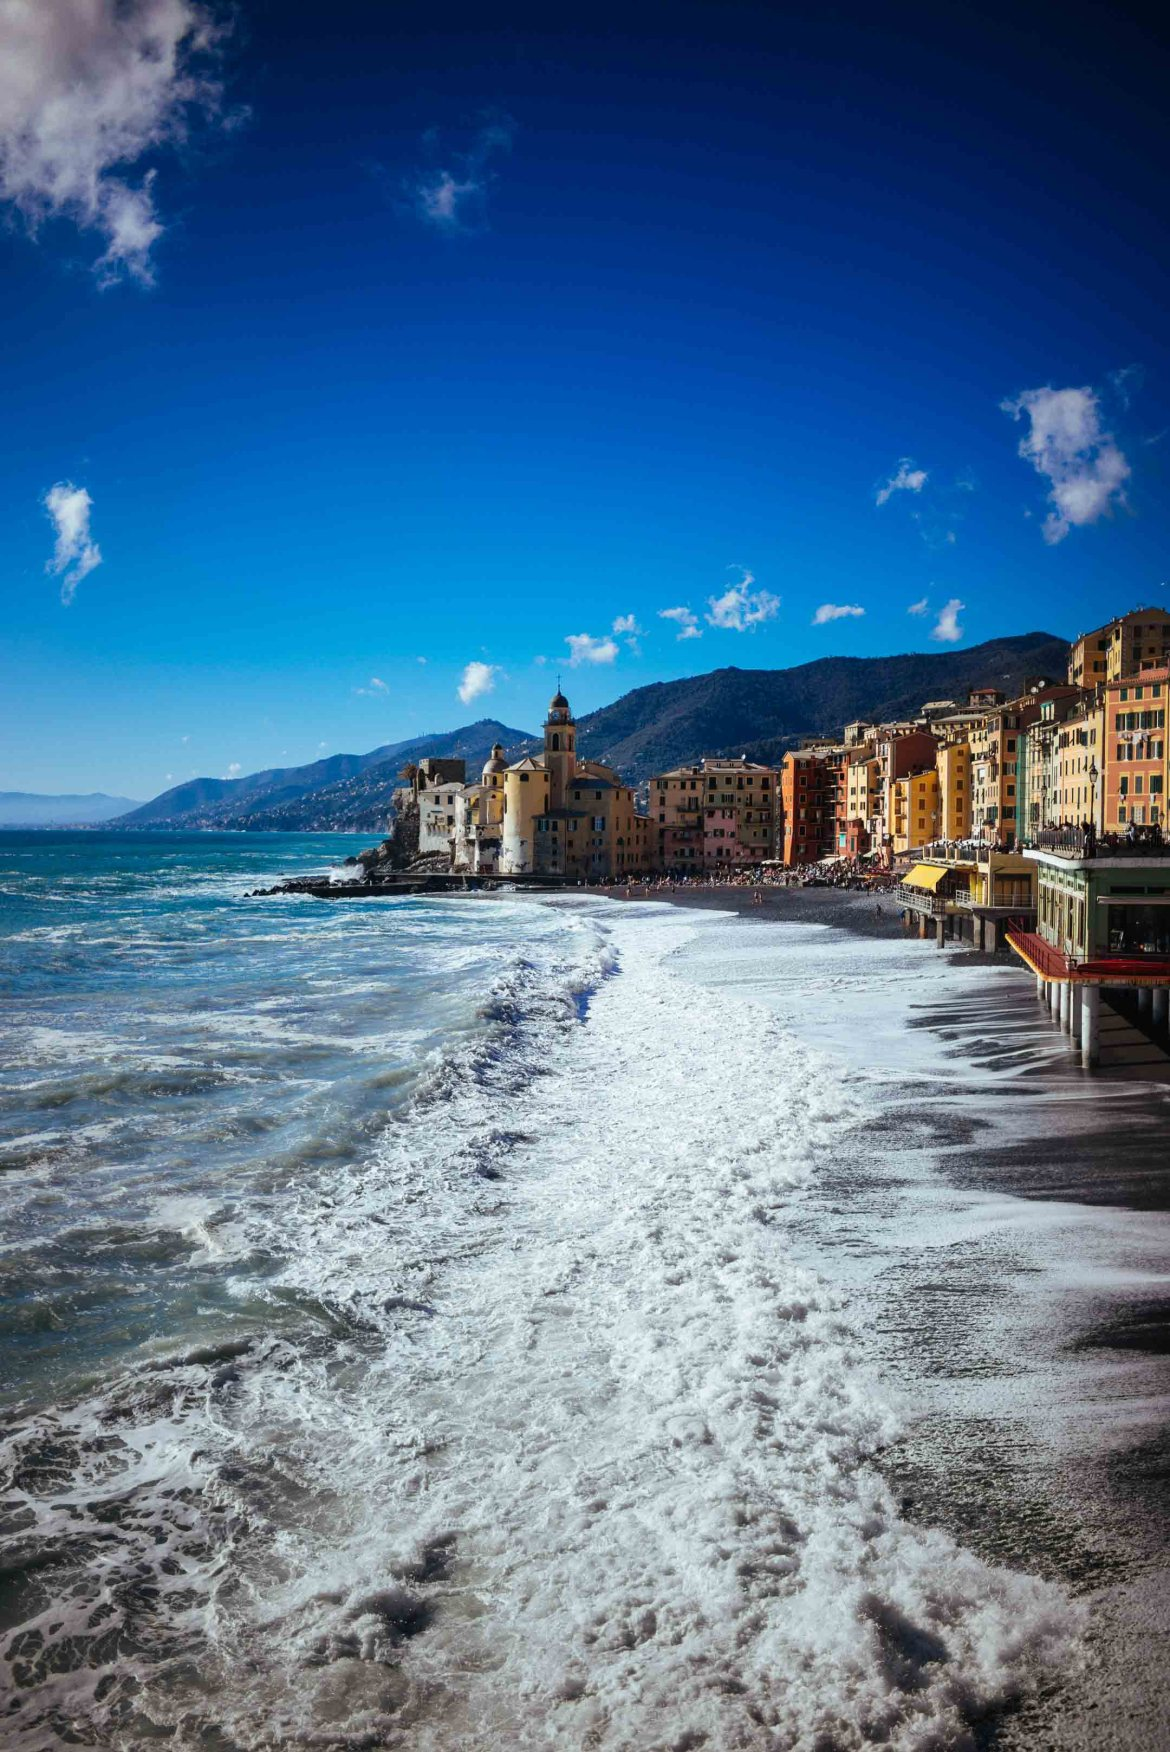 The Taste Edit recommends that you visit this Italian Beach town that no one knows about - Camogli, Italy.